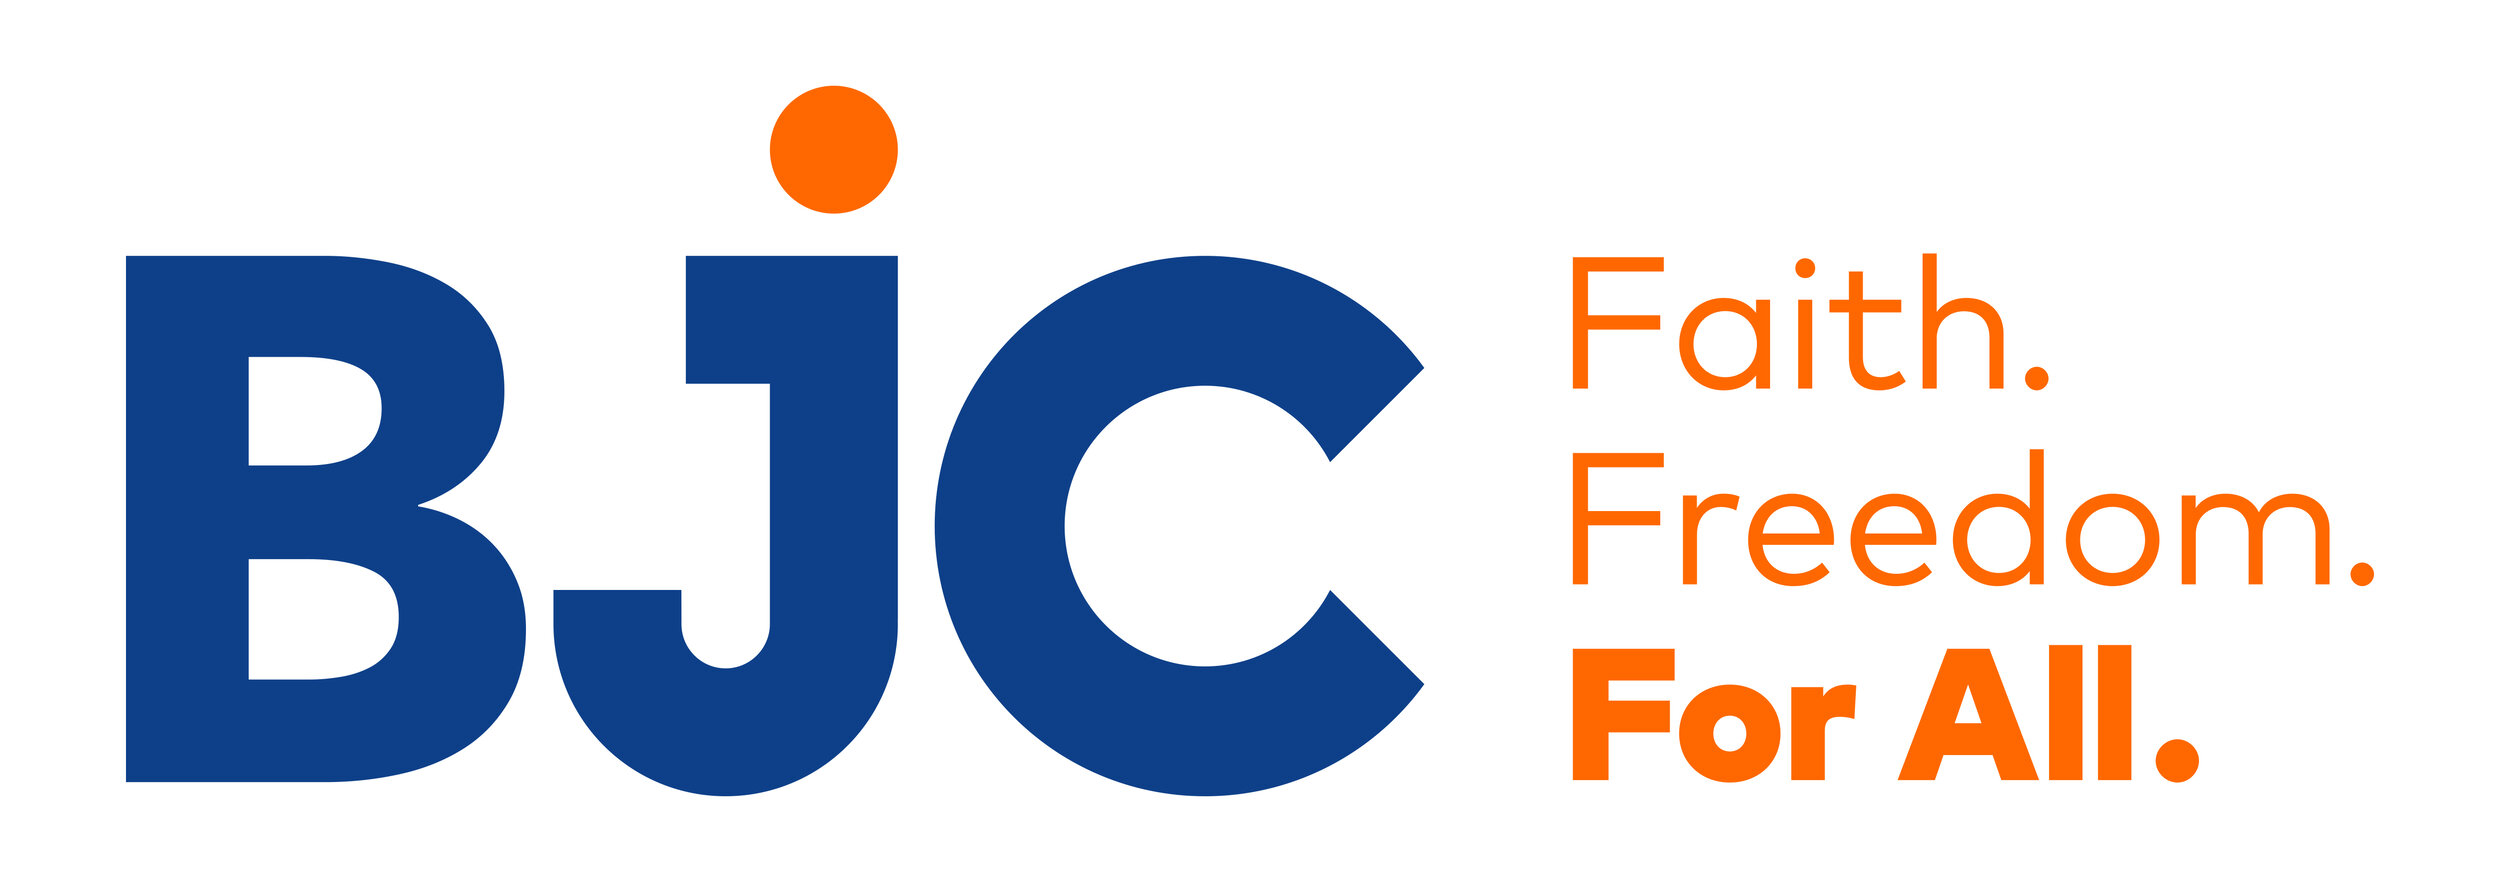 BJC_logo_words stacked to the right.jpg